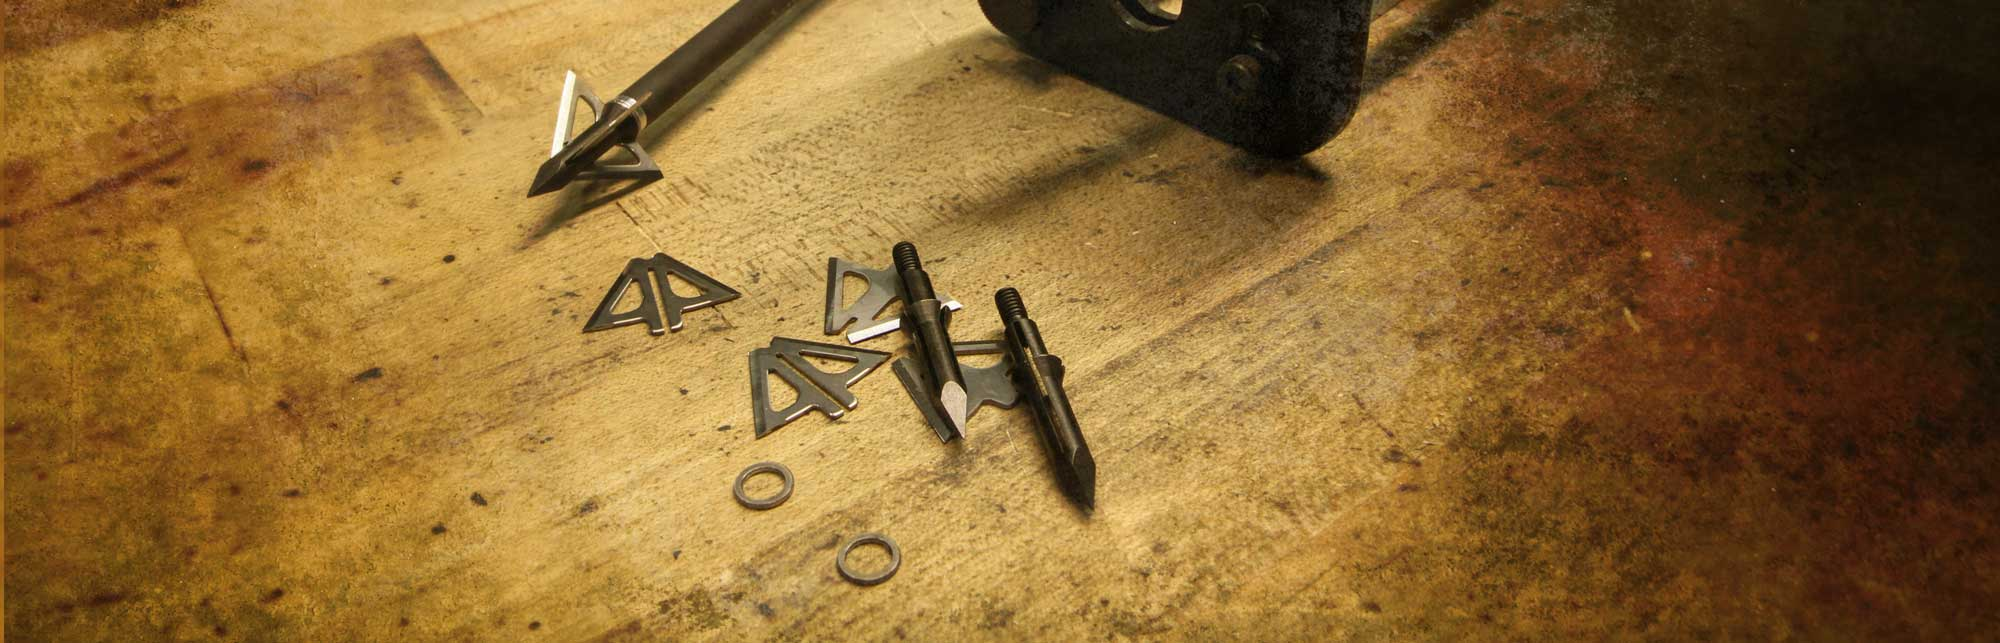 Slick Trick Broadheads - blades locking system and replacement